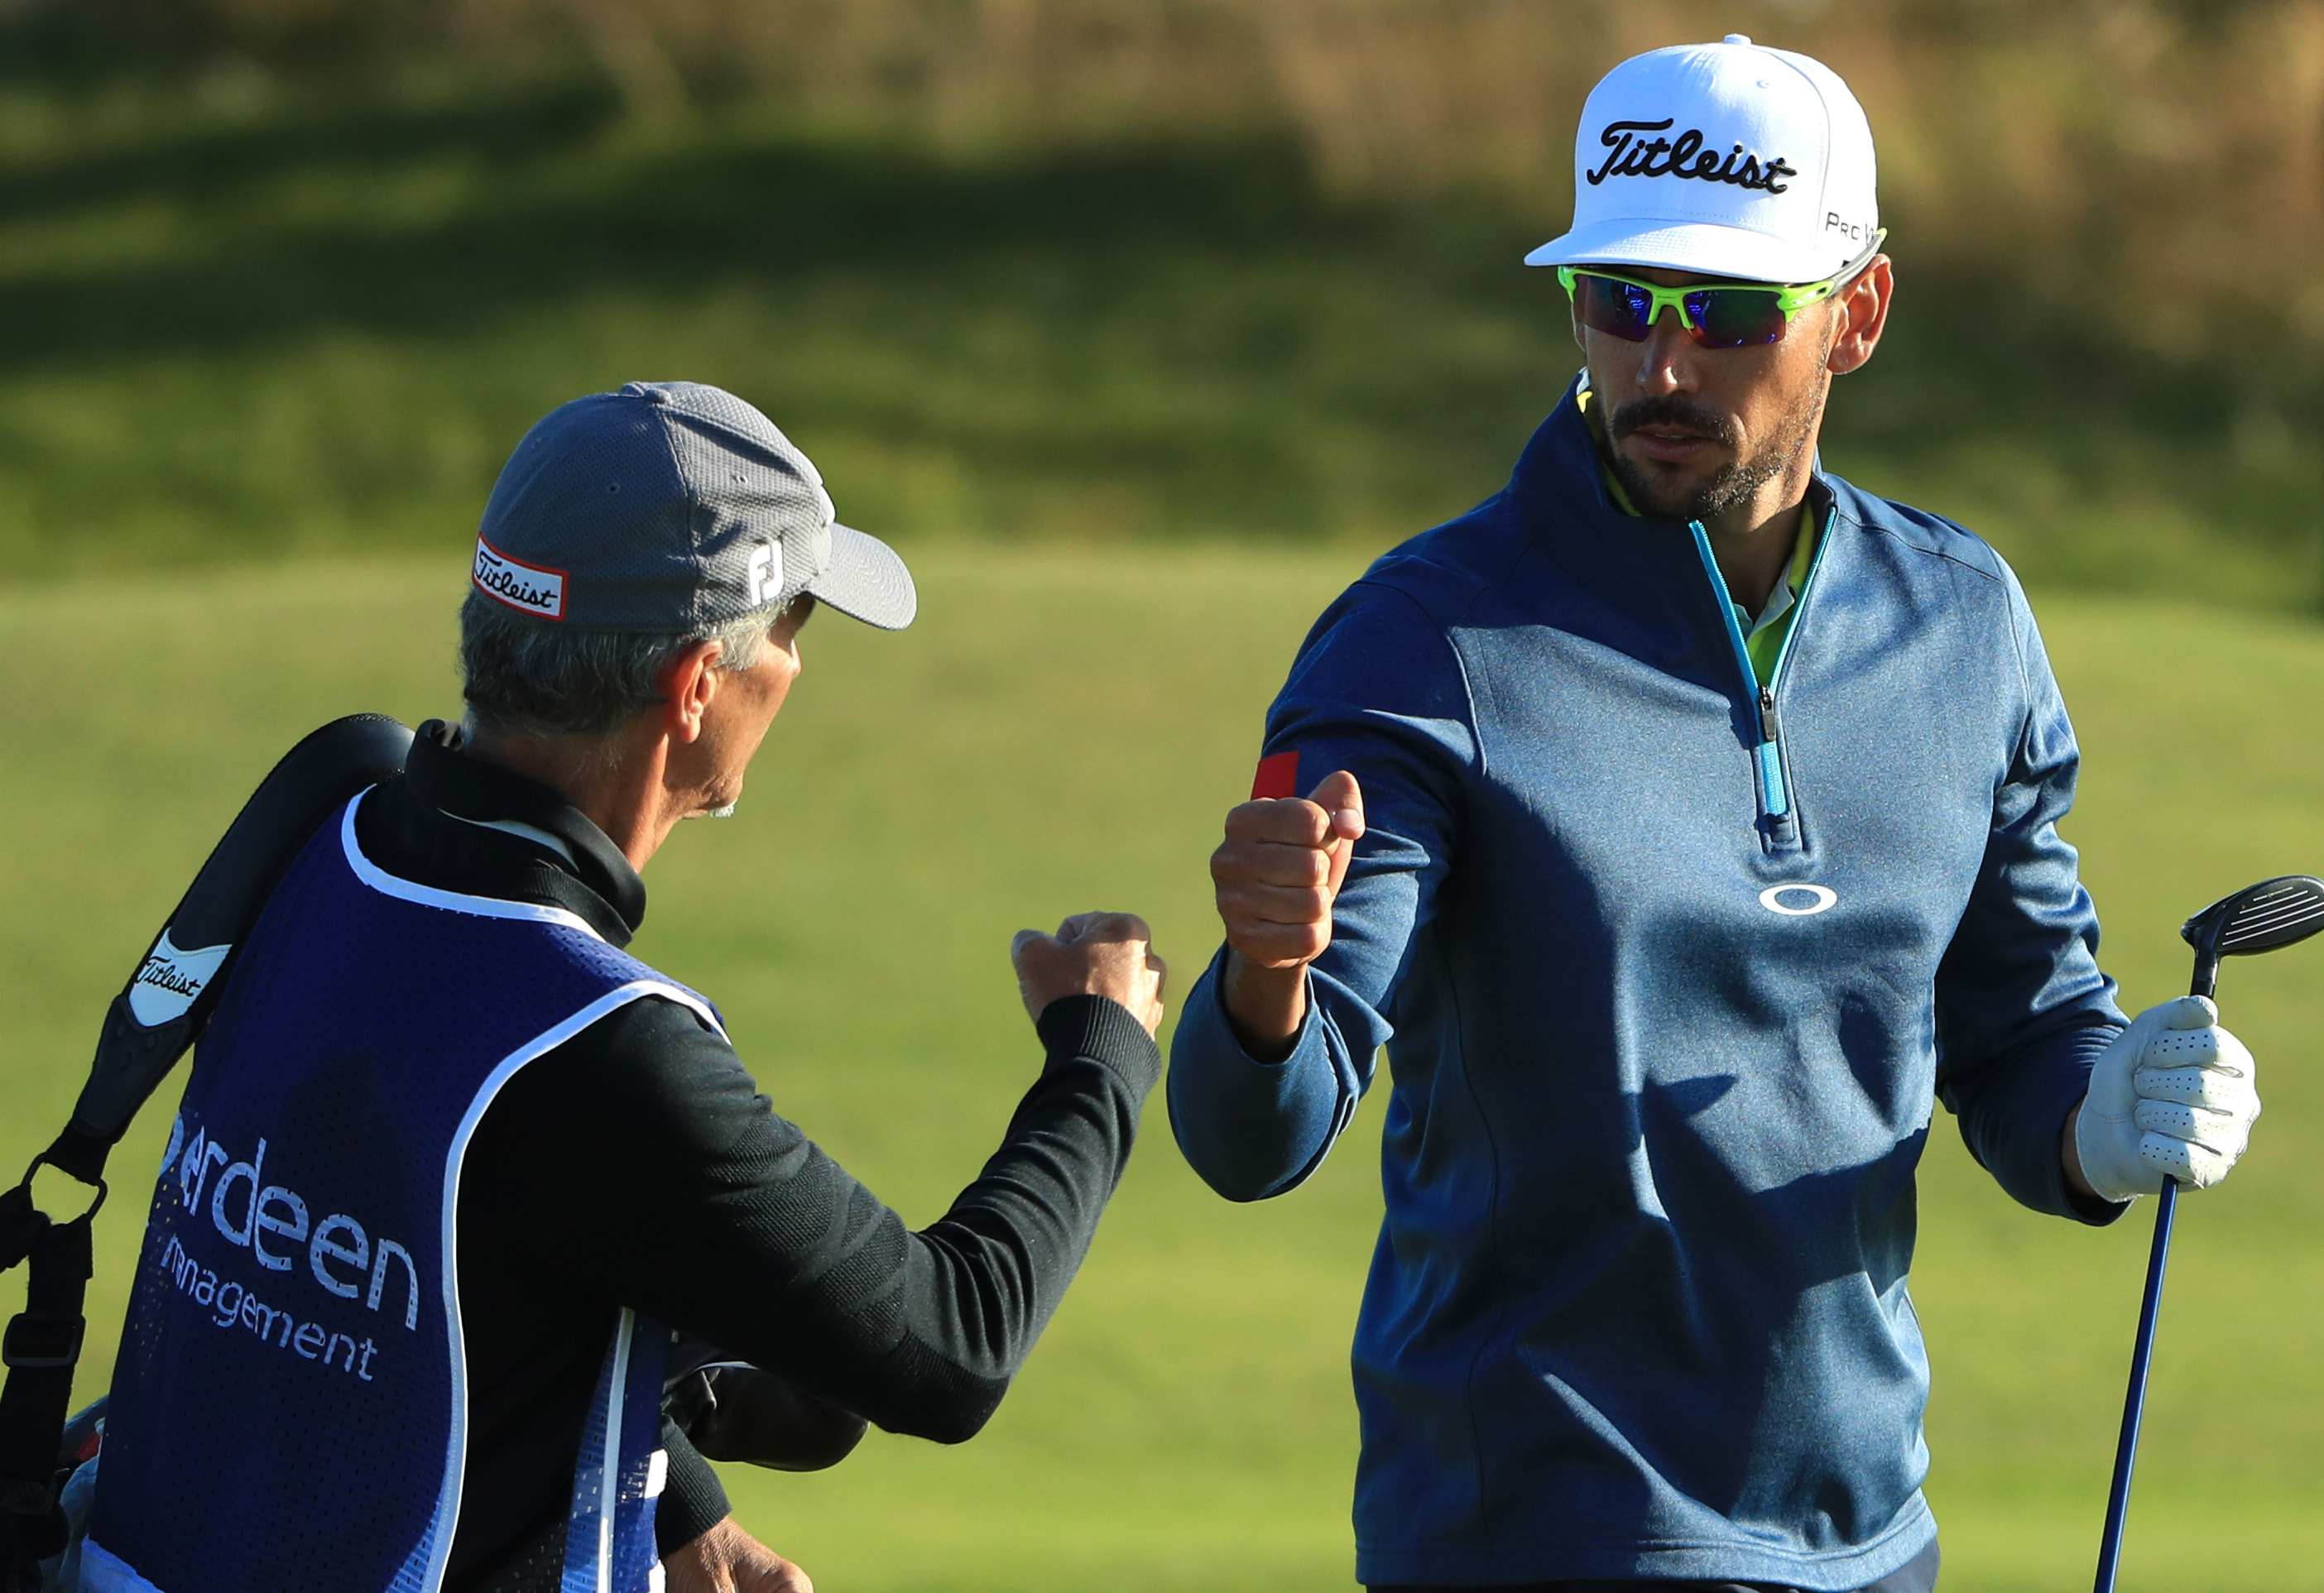 Rafa Cabrera Bello fist bumps caddie Colin Byrne after his second shot on the 1st play off hole of the AAM Scottish Open.